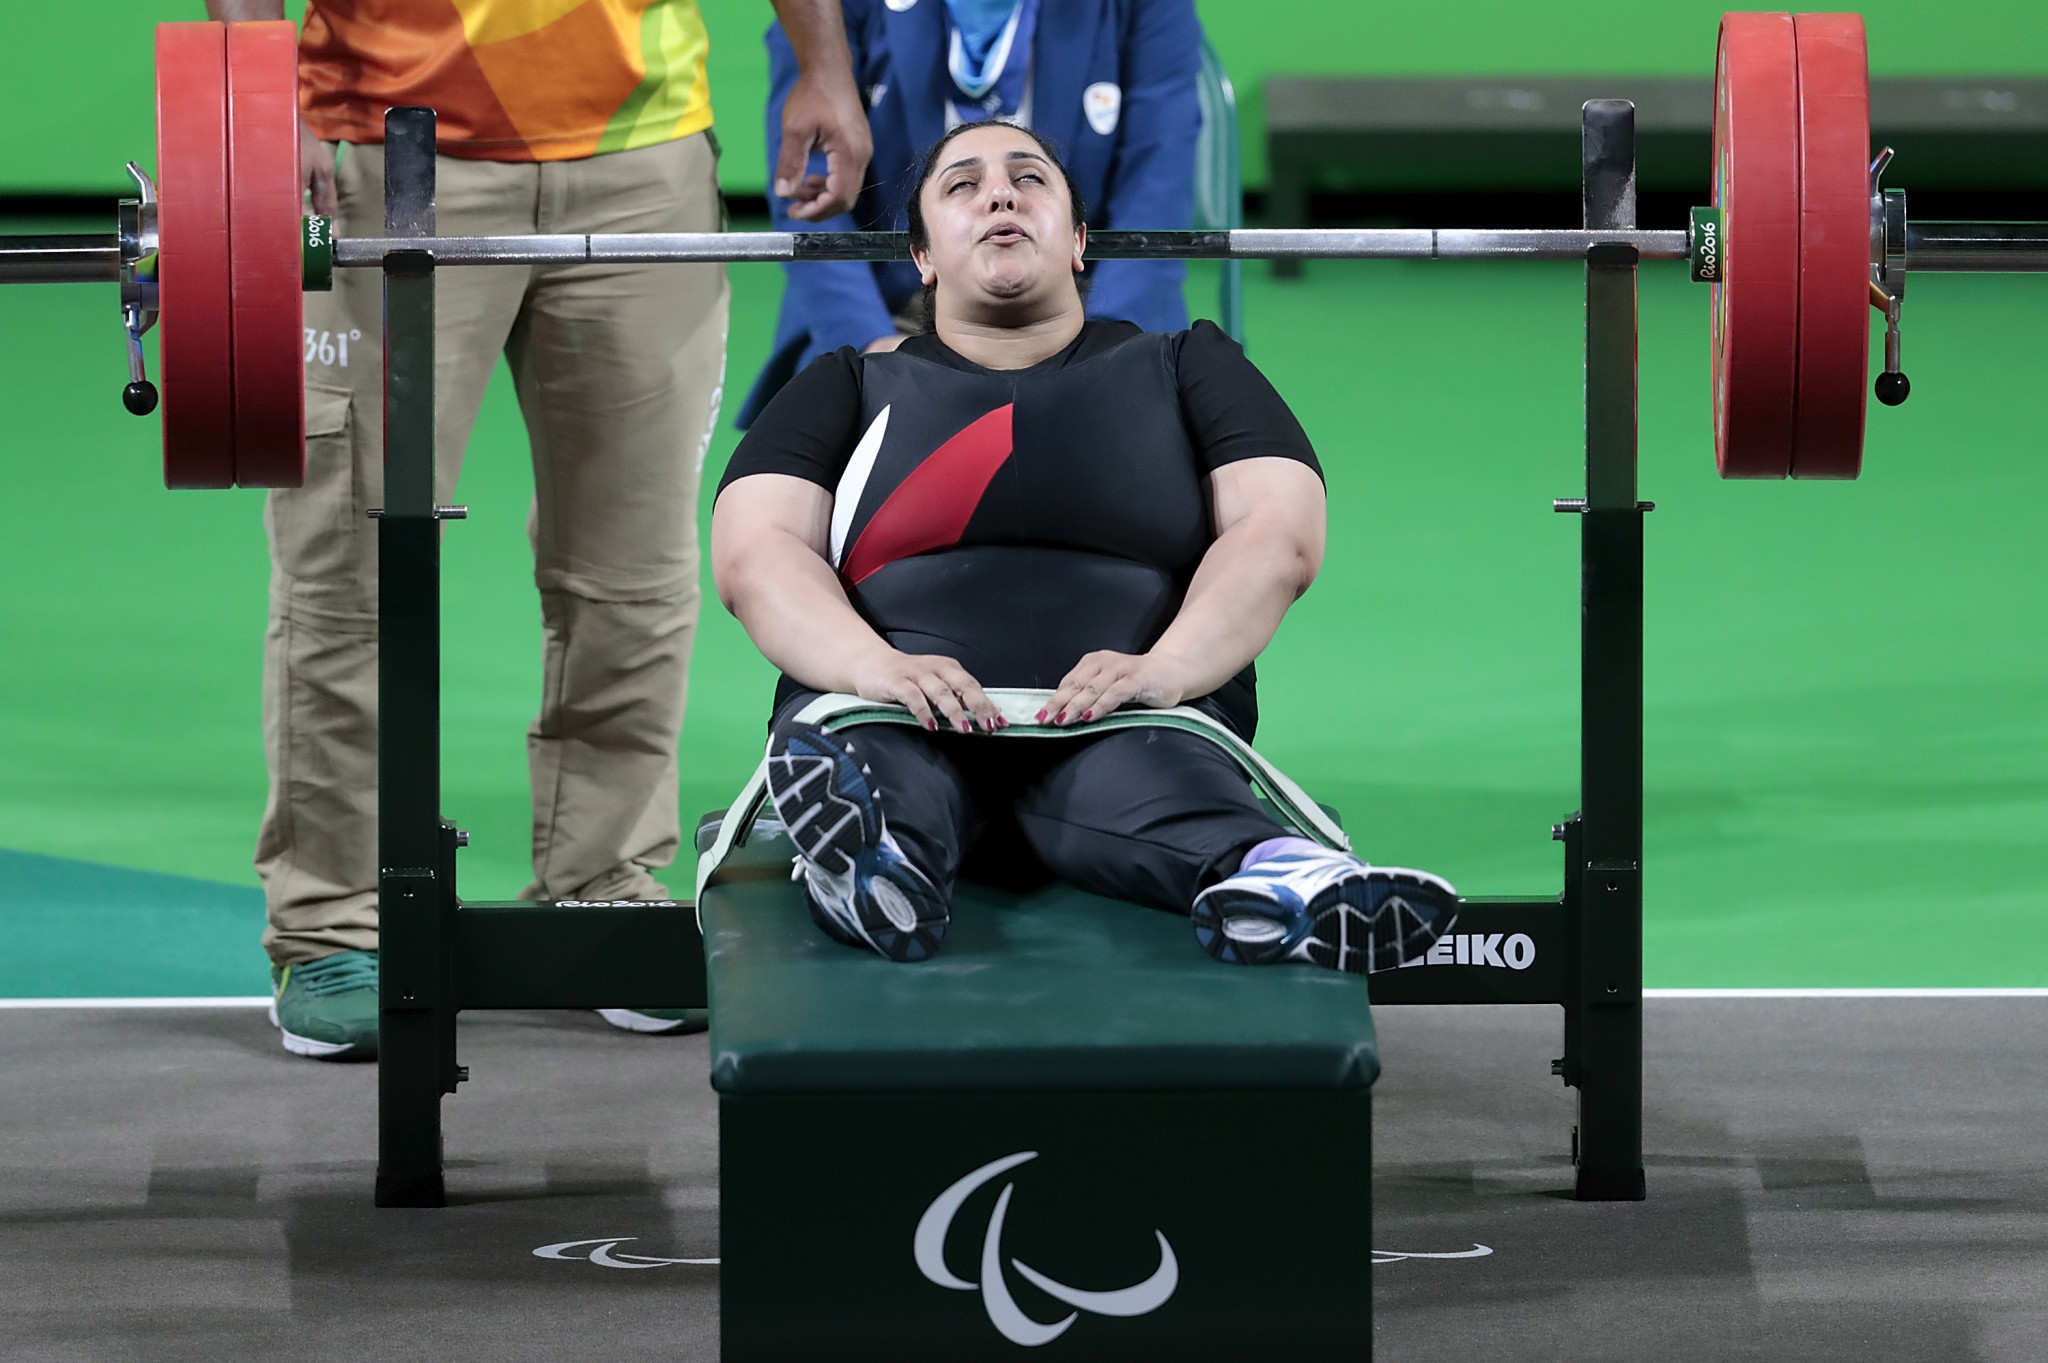 Paralympic champion Randa Mahmoud clinched the gold medal in the women's over-86 kilograms event in Dubai ©Getty Images